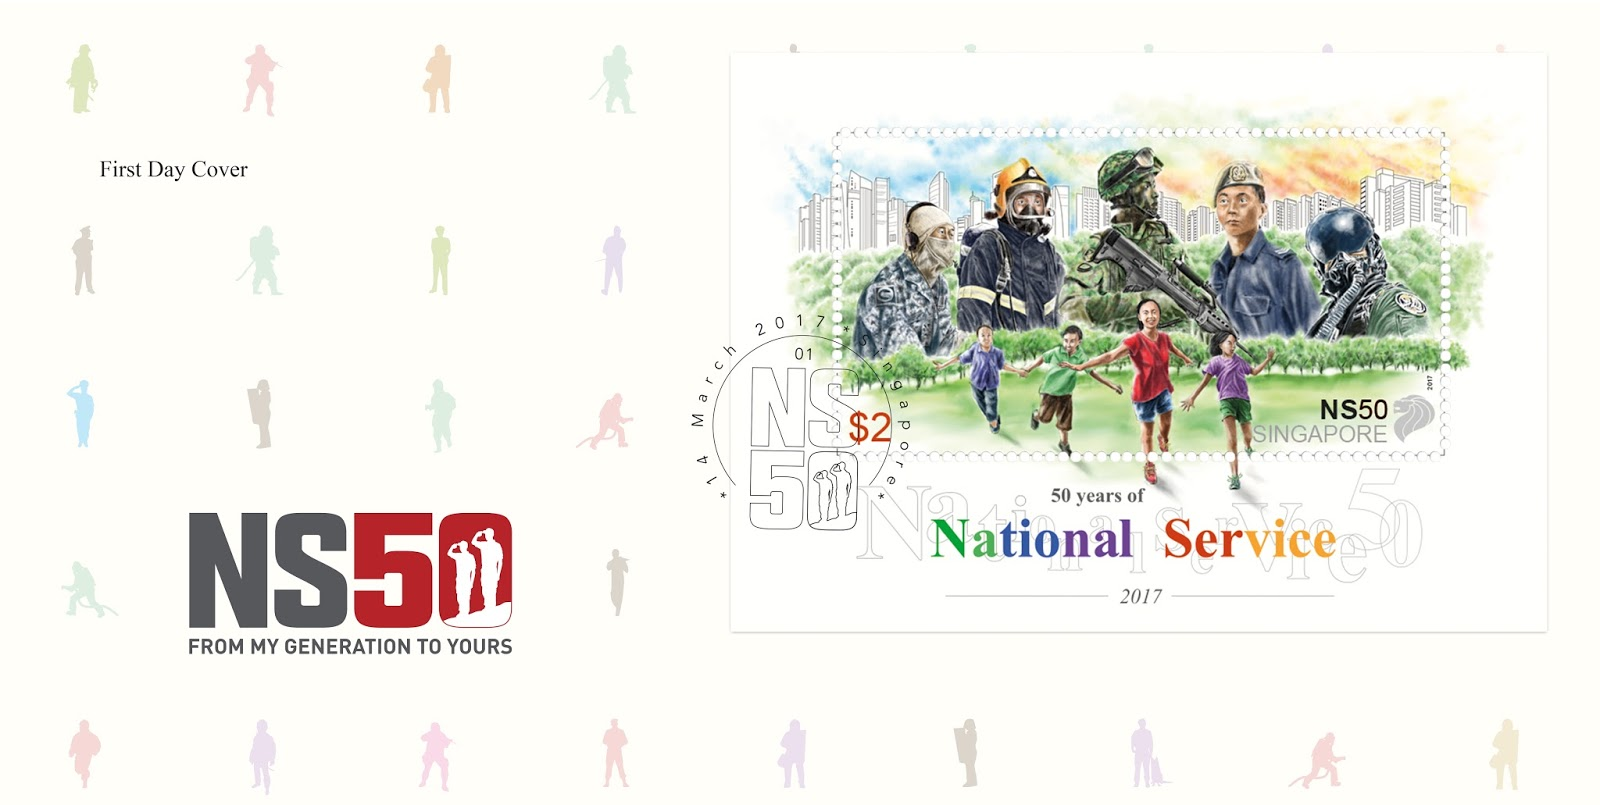 1st day Cover, postmarked version of a $2 stamp with the release date - March 14, 2017 - will be sold at $2.85 each.